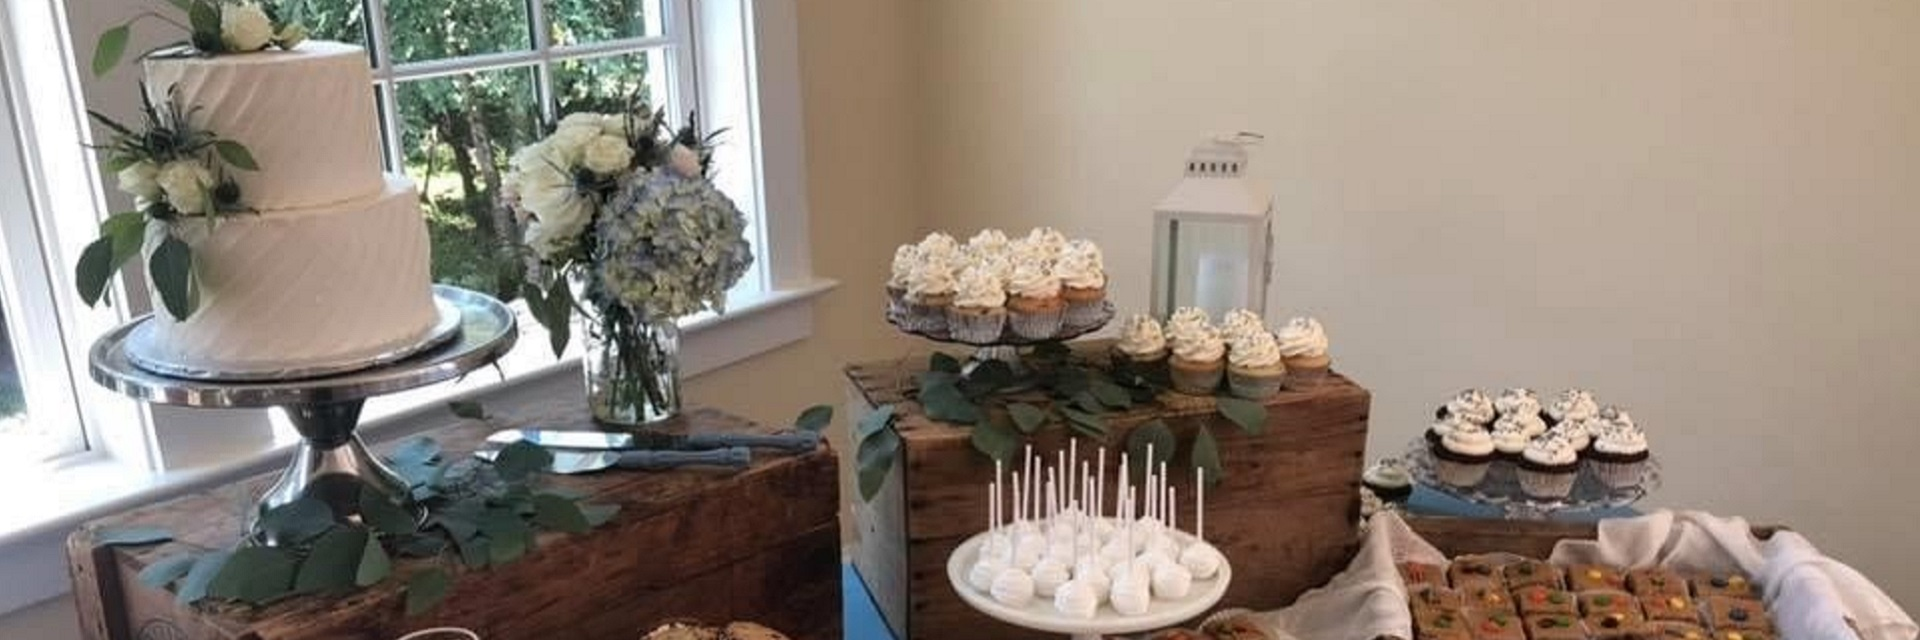 wedding cake and wedding cupcakes, cookie bars